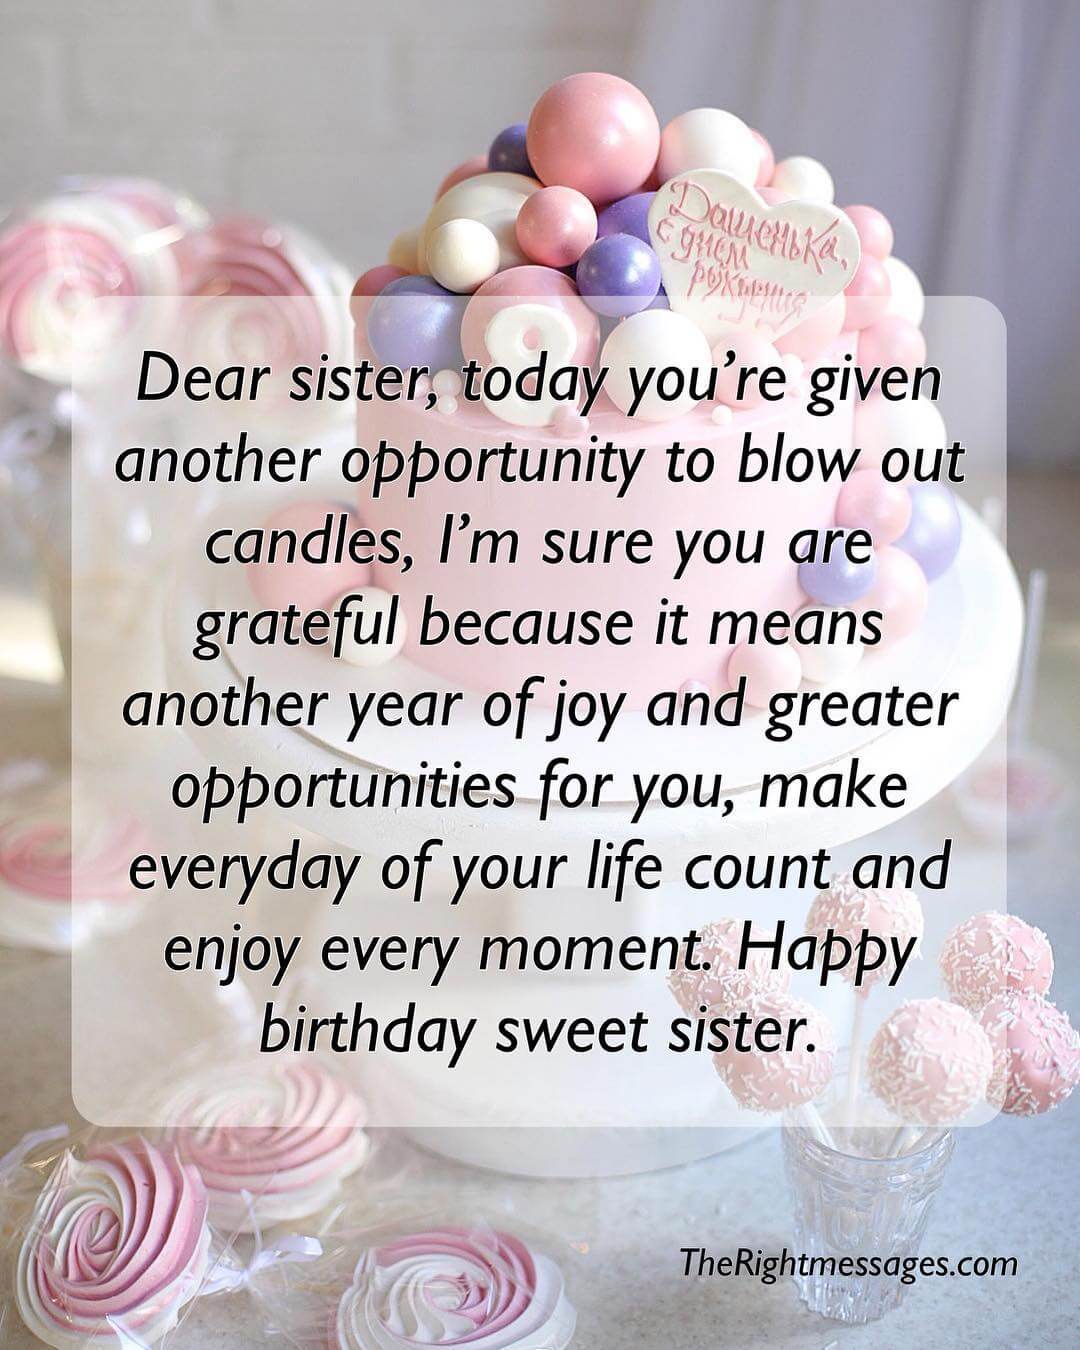 Short And Long Birthday Messages, Wishes & Quotes For Sister | The